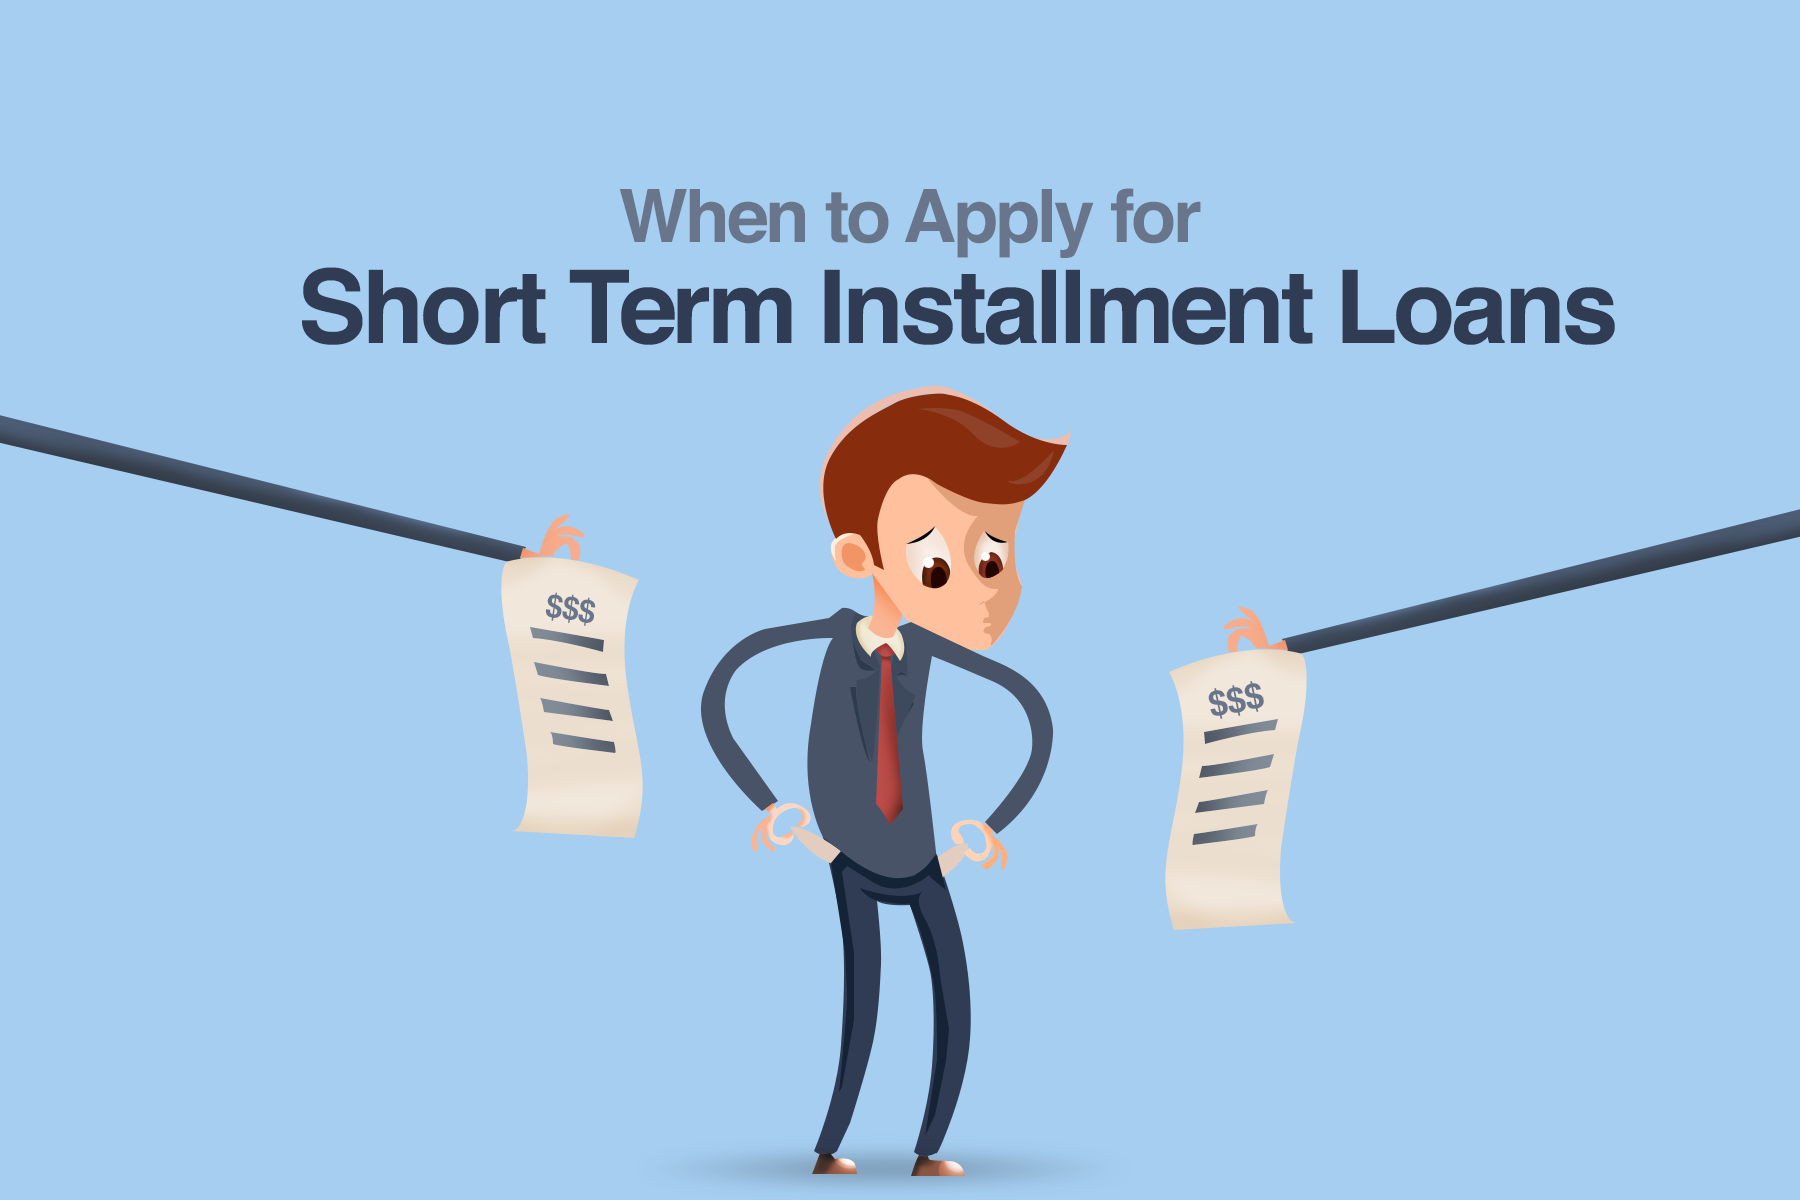 When to apply for short term installment loans